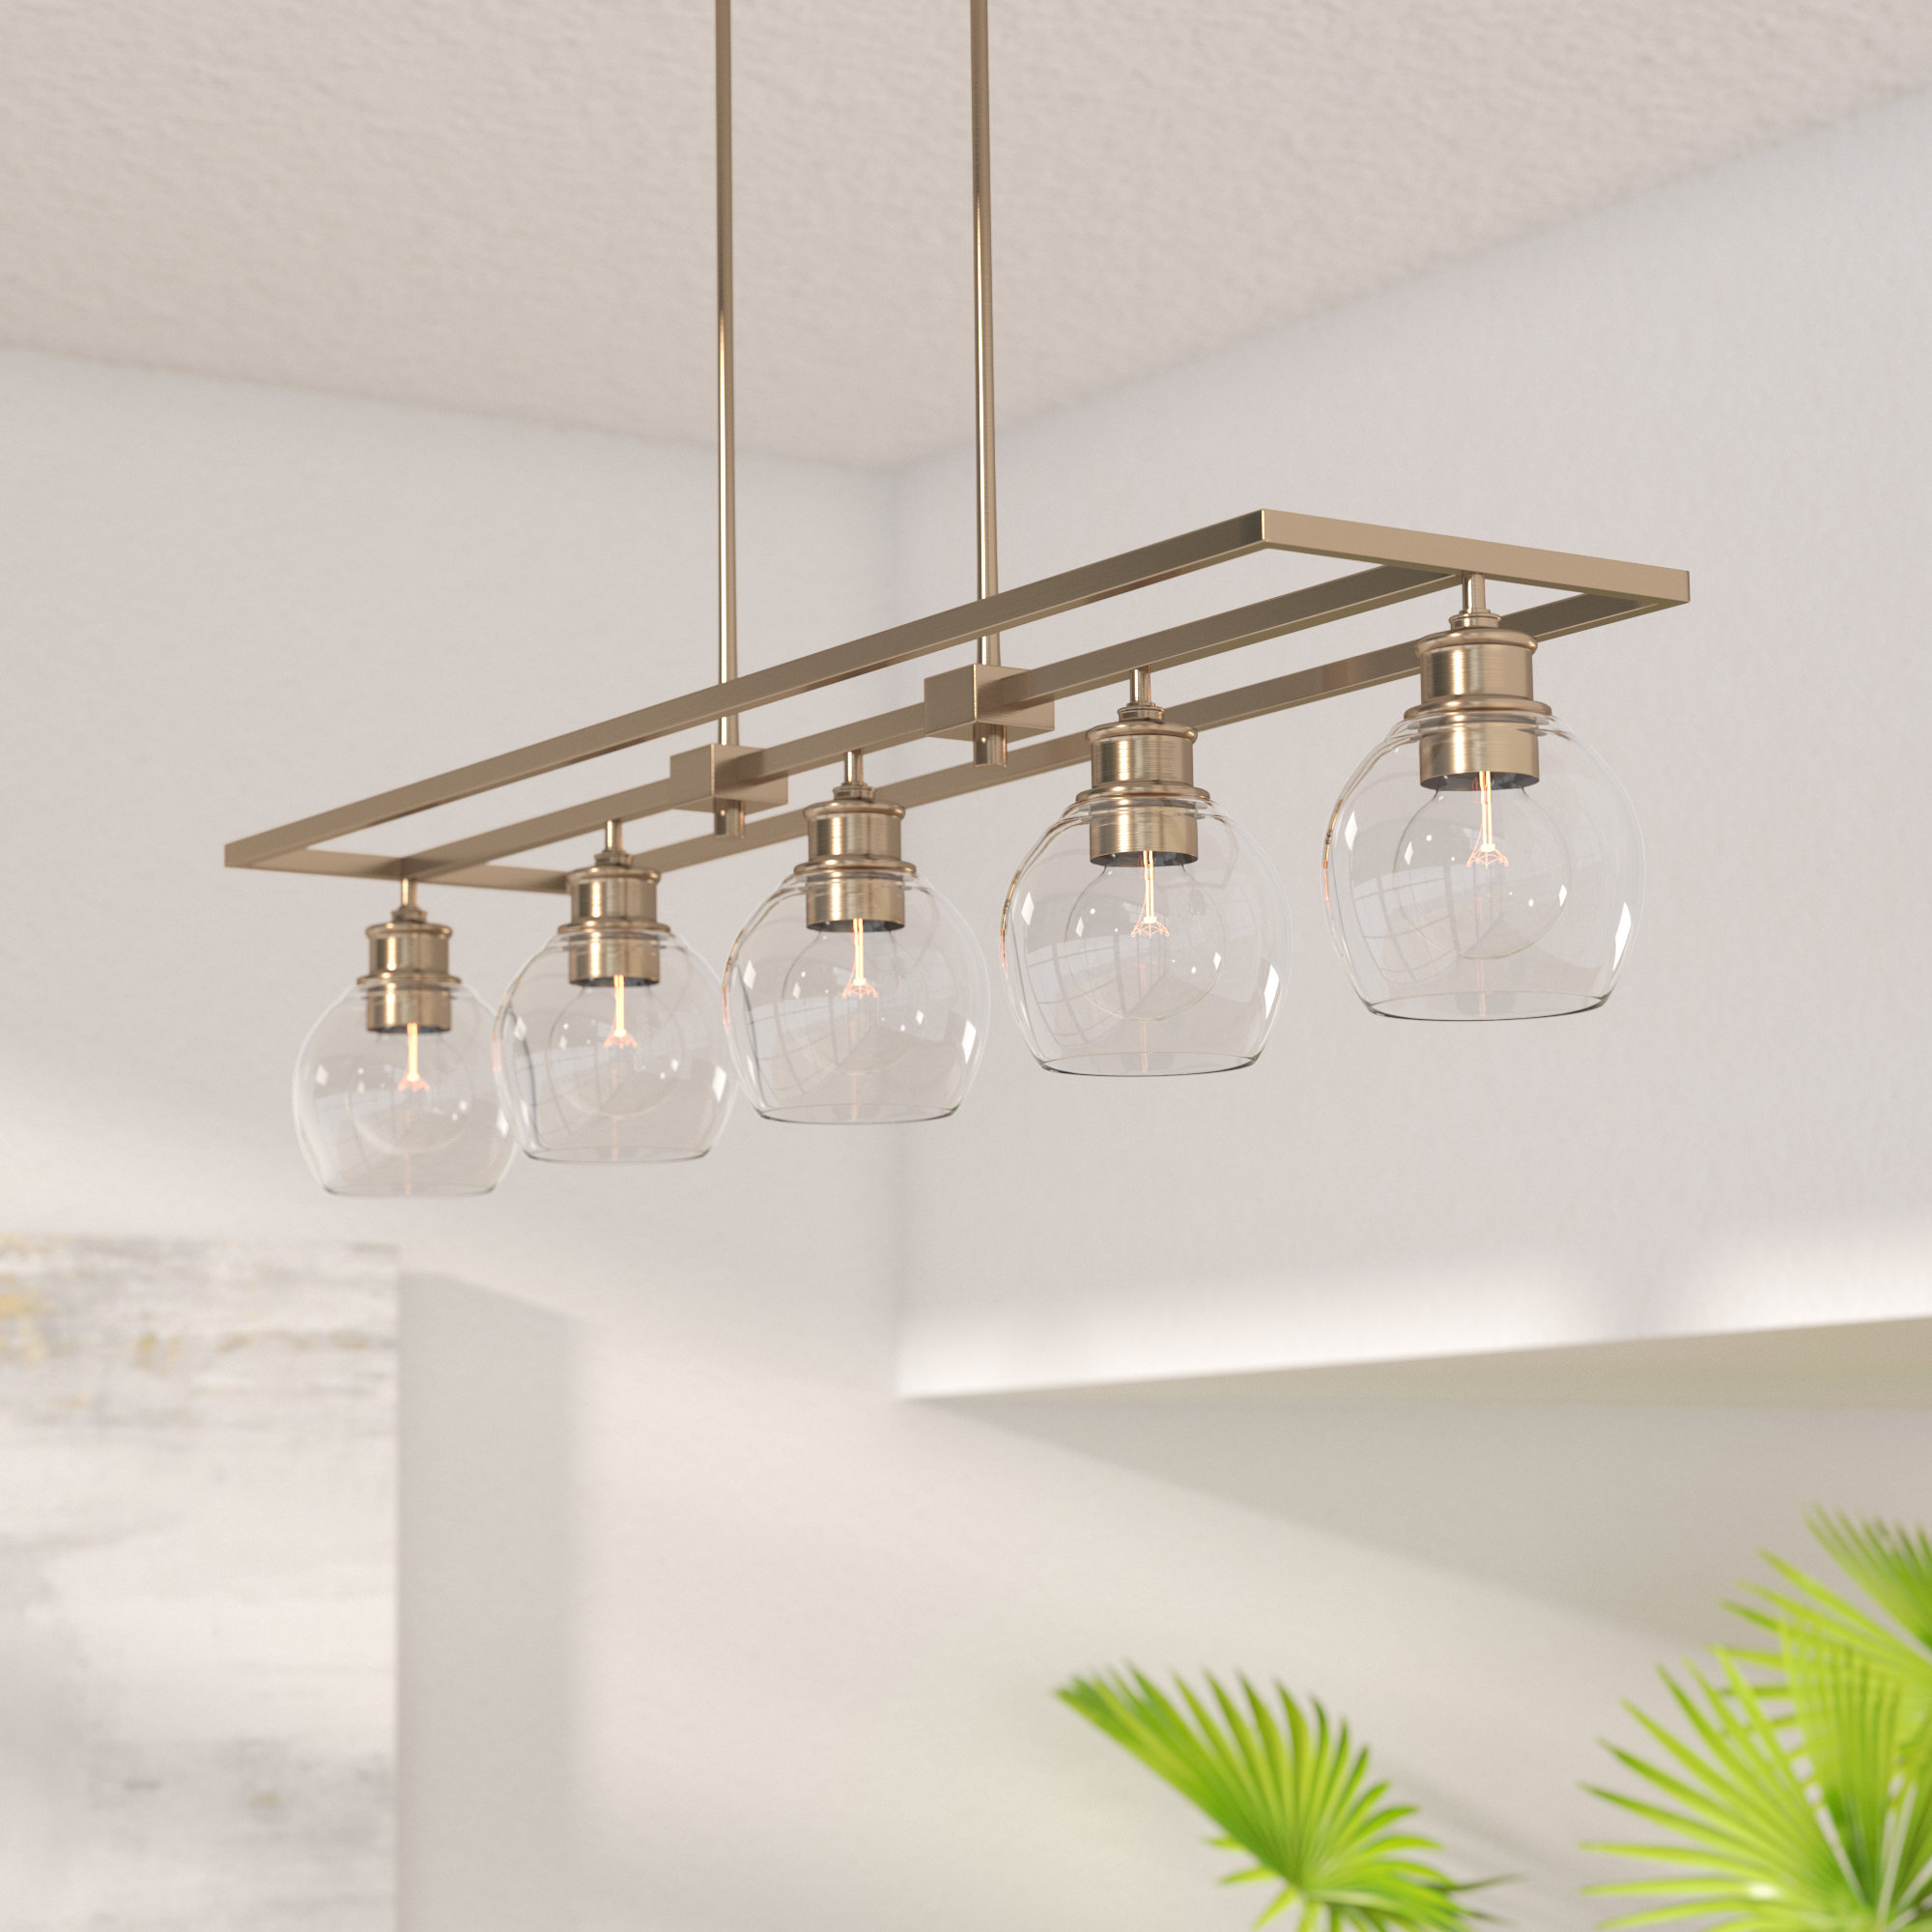 Wayfair Throughout Favorite Freemont 5 Light Kitchen Island Linear Chandeliers (View 17 of 25)